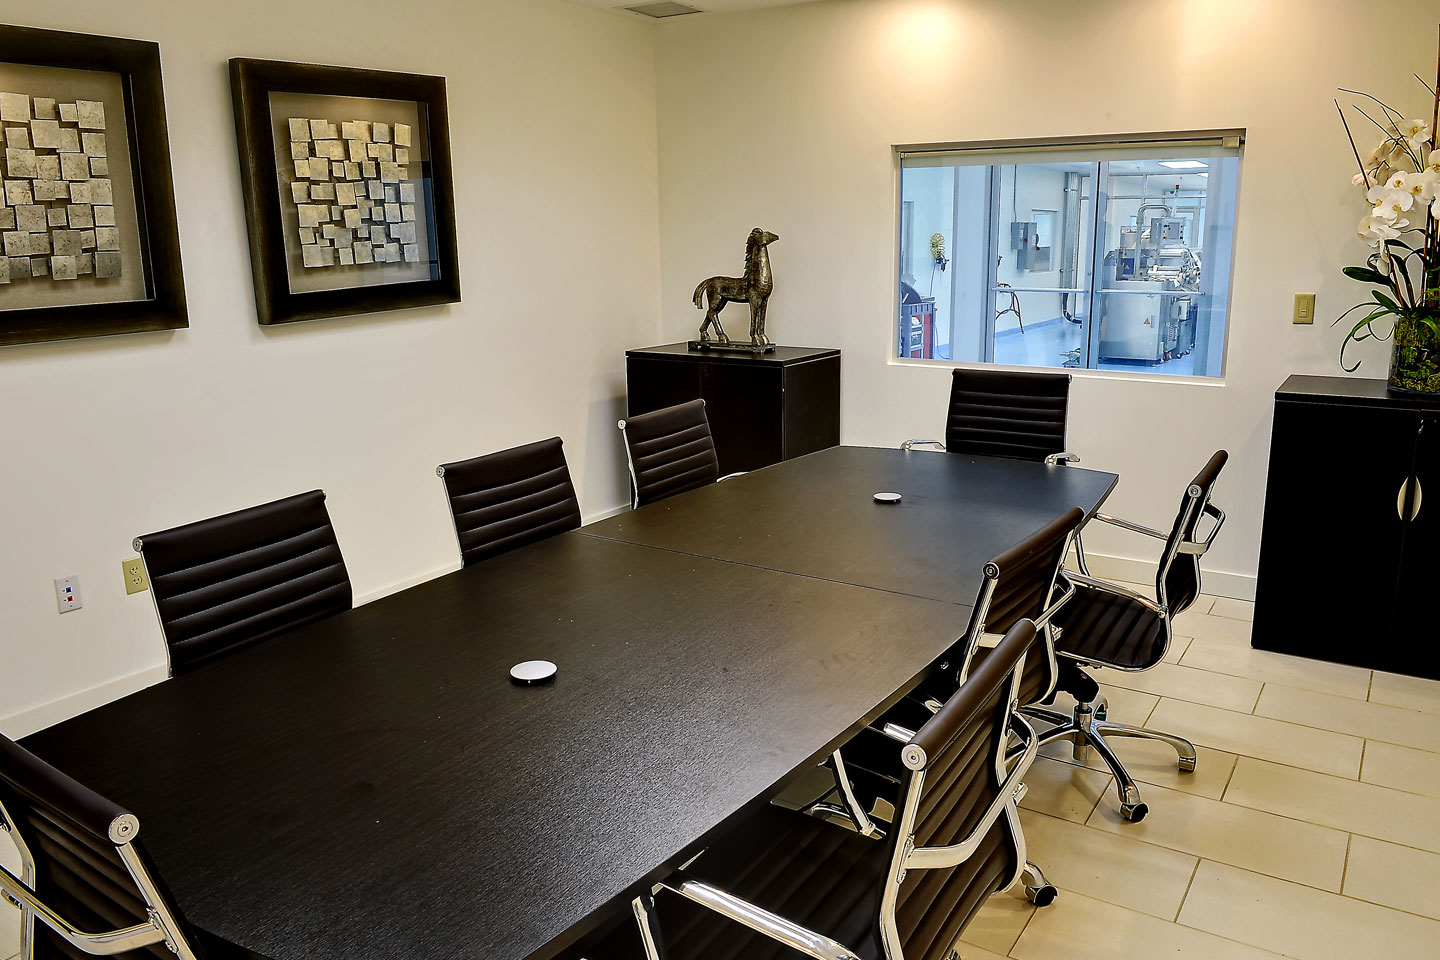 photo of the nutriforce industrial facility conference room